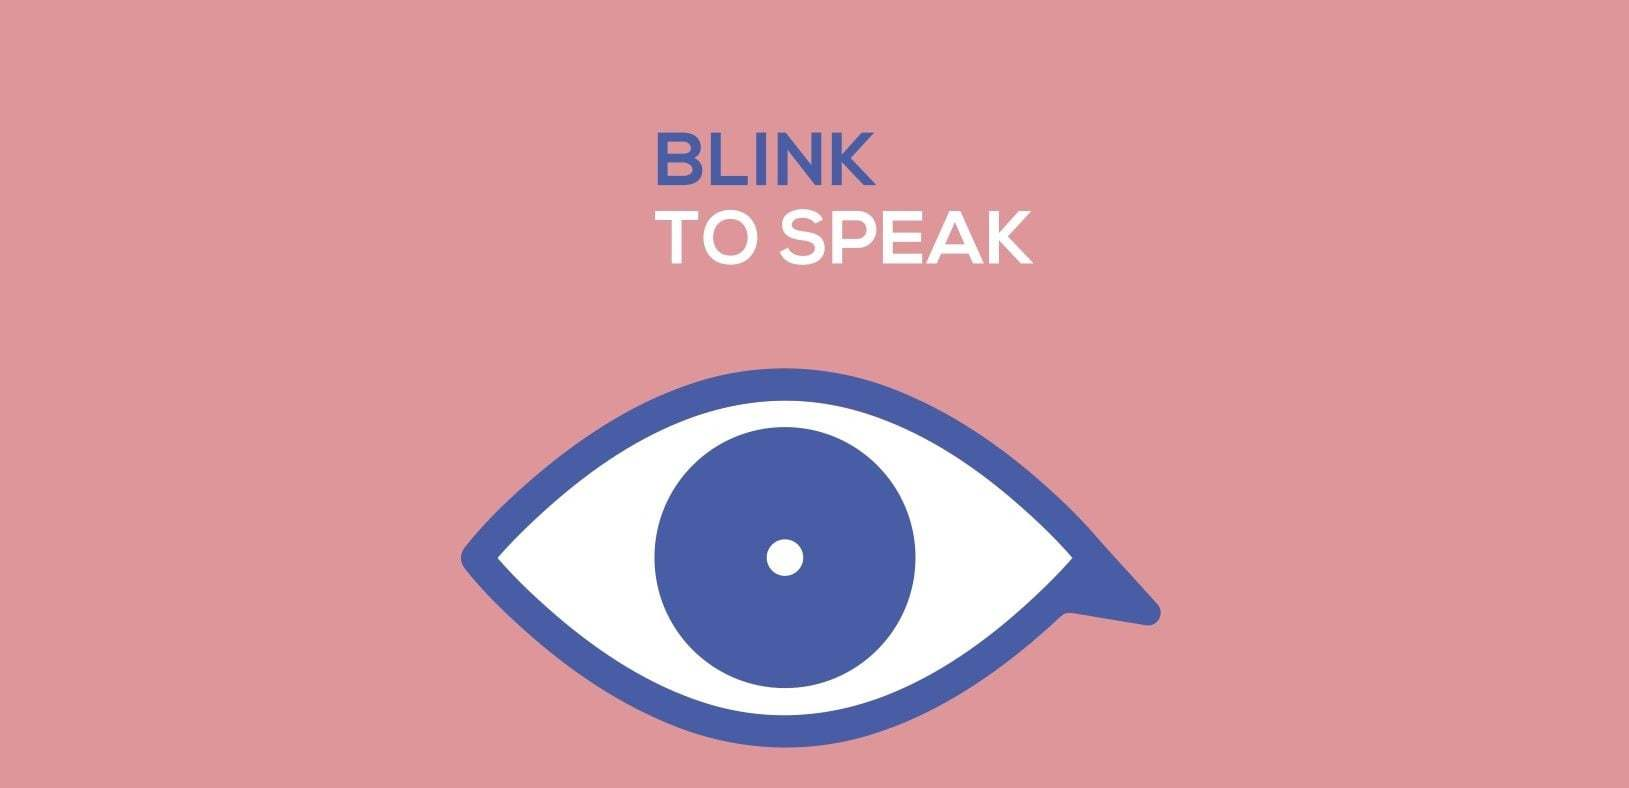 blink to speak_tbwa india_neurogen_asha ek hope foundation_cannes lions 2018_bigumigu_